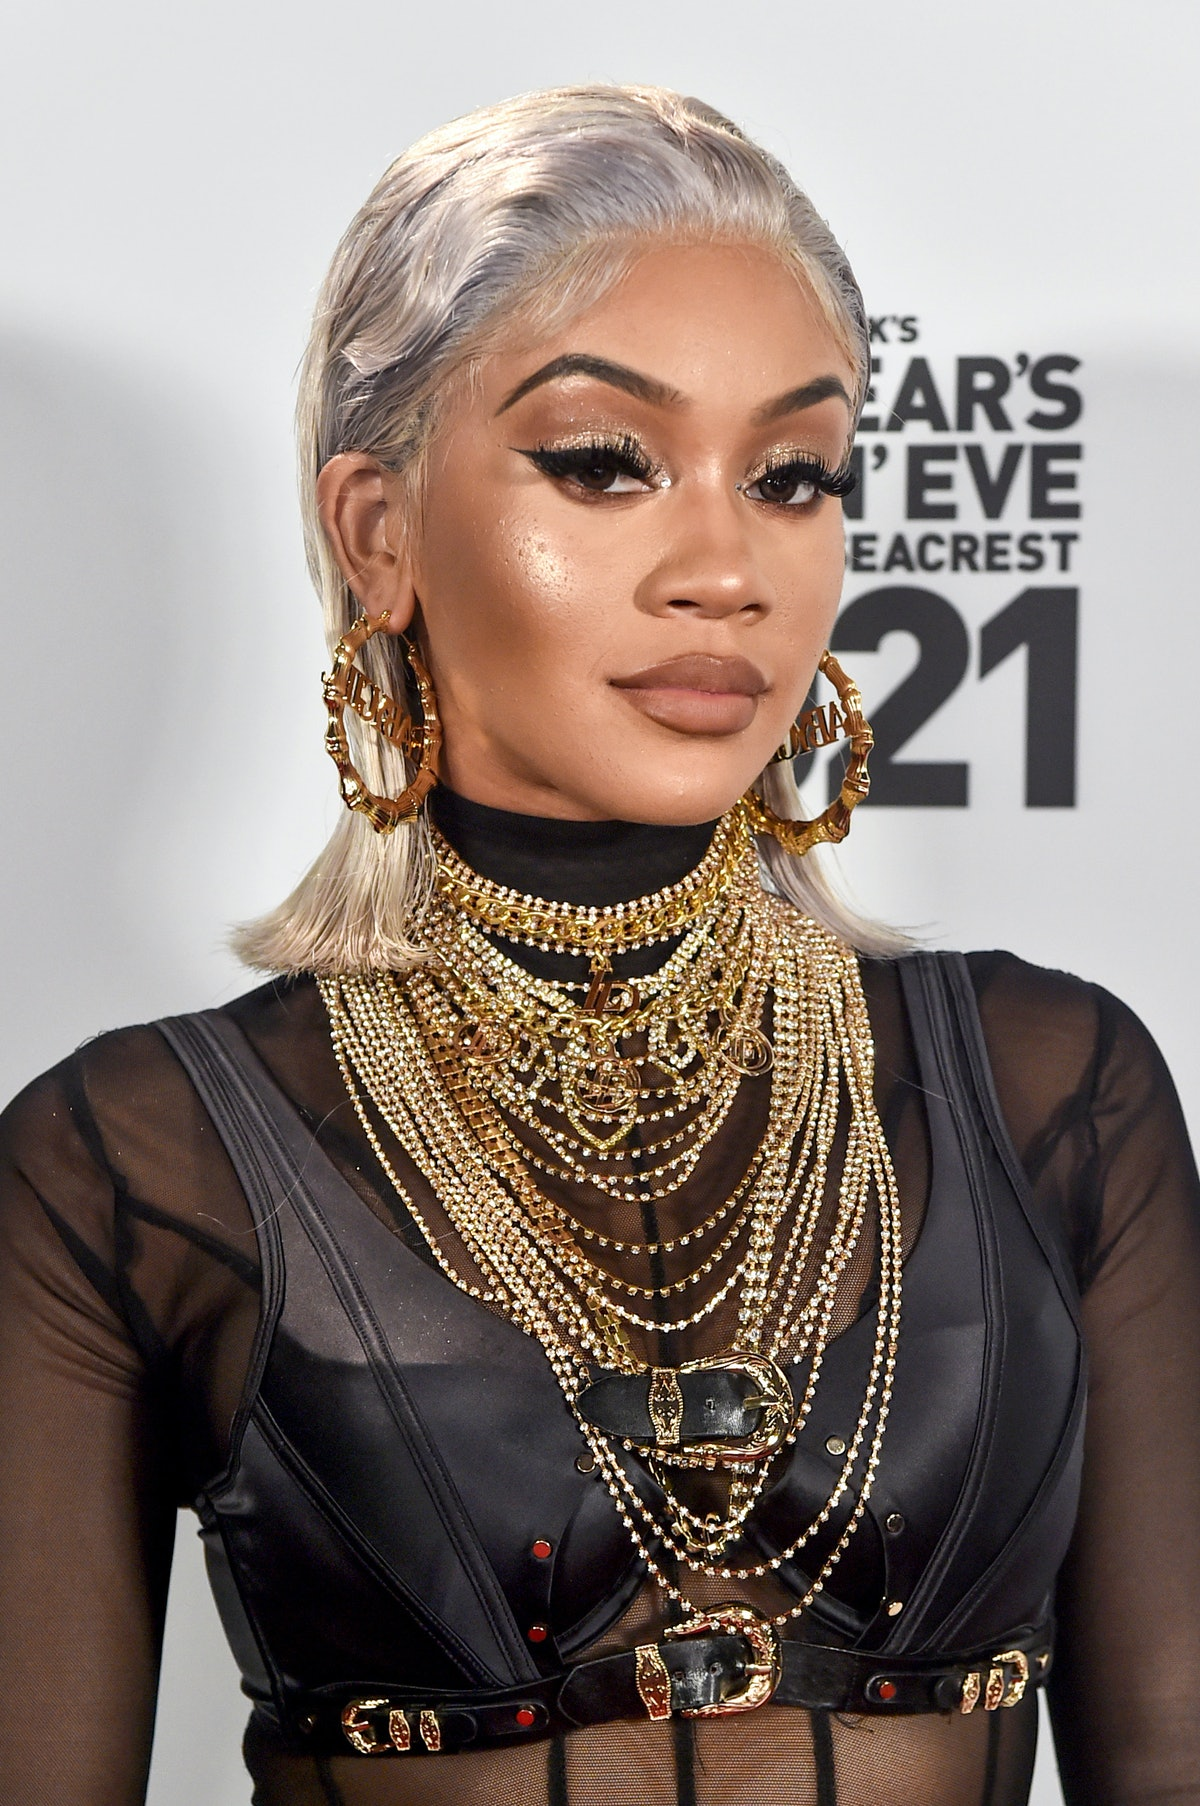 LOS ANGELES, CA – DECEMBER 31st: In this image released on December 31, Saweetie arrives at Dick Cla...